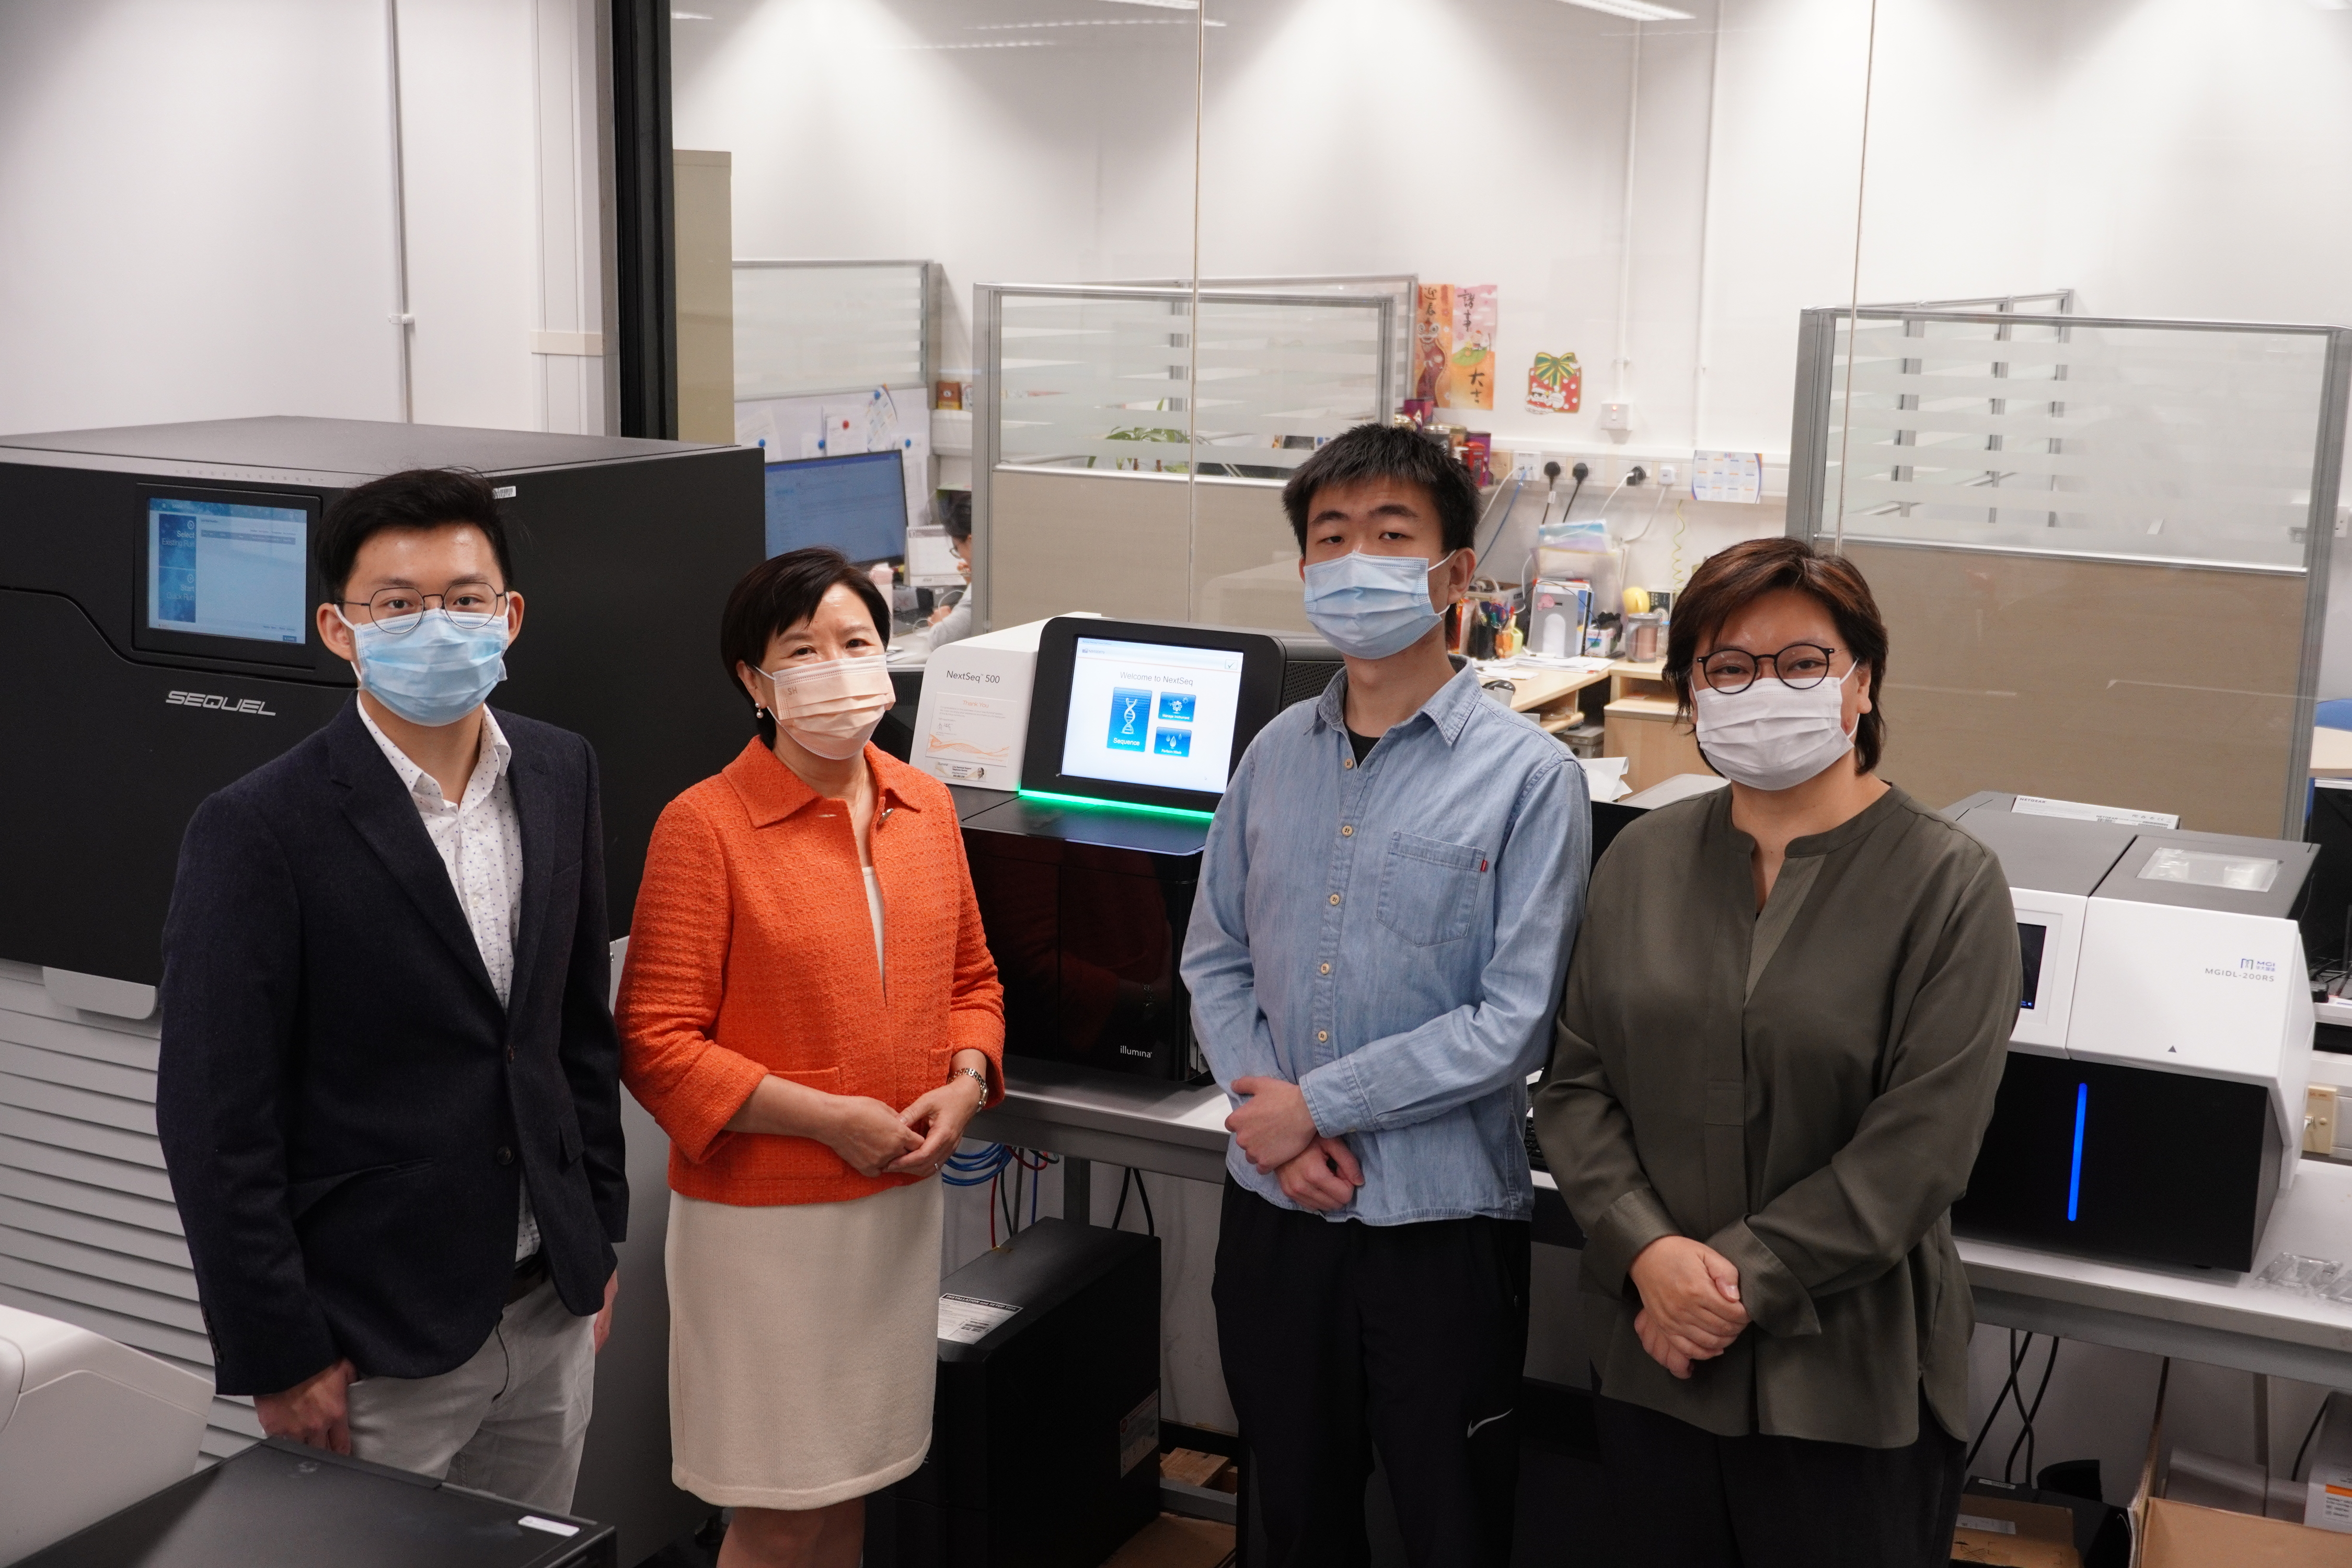 Prof. Ip and her research team